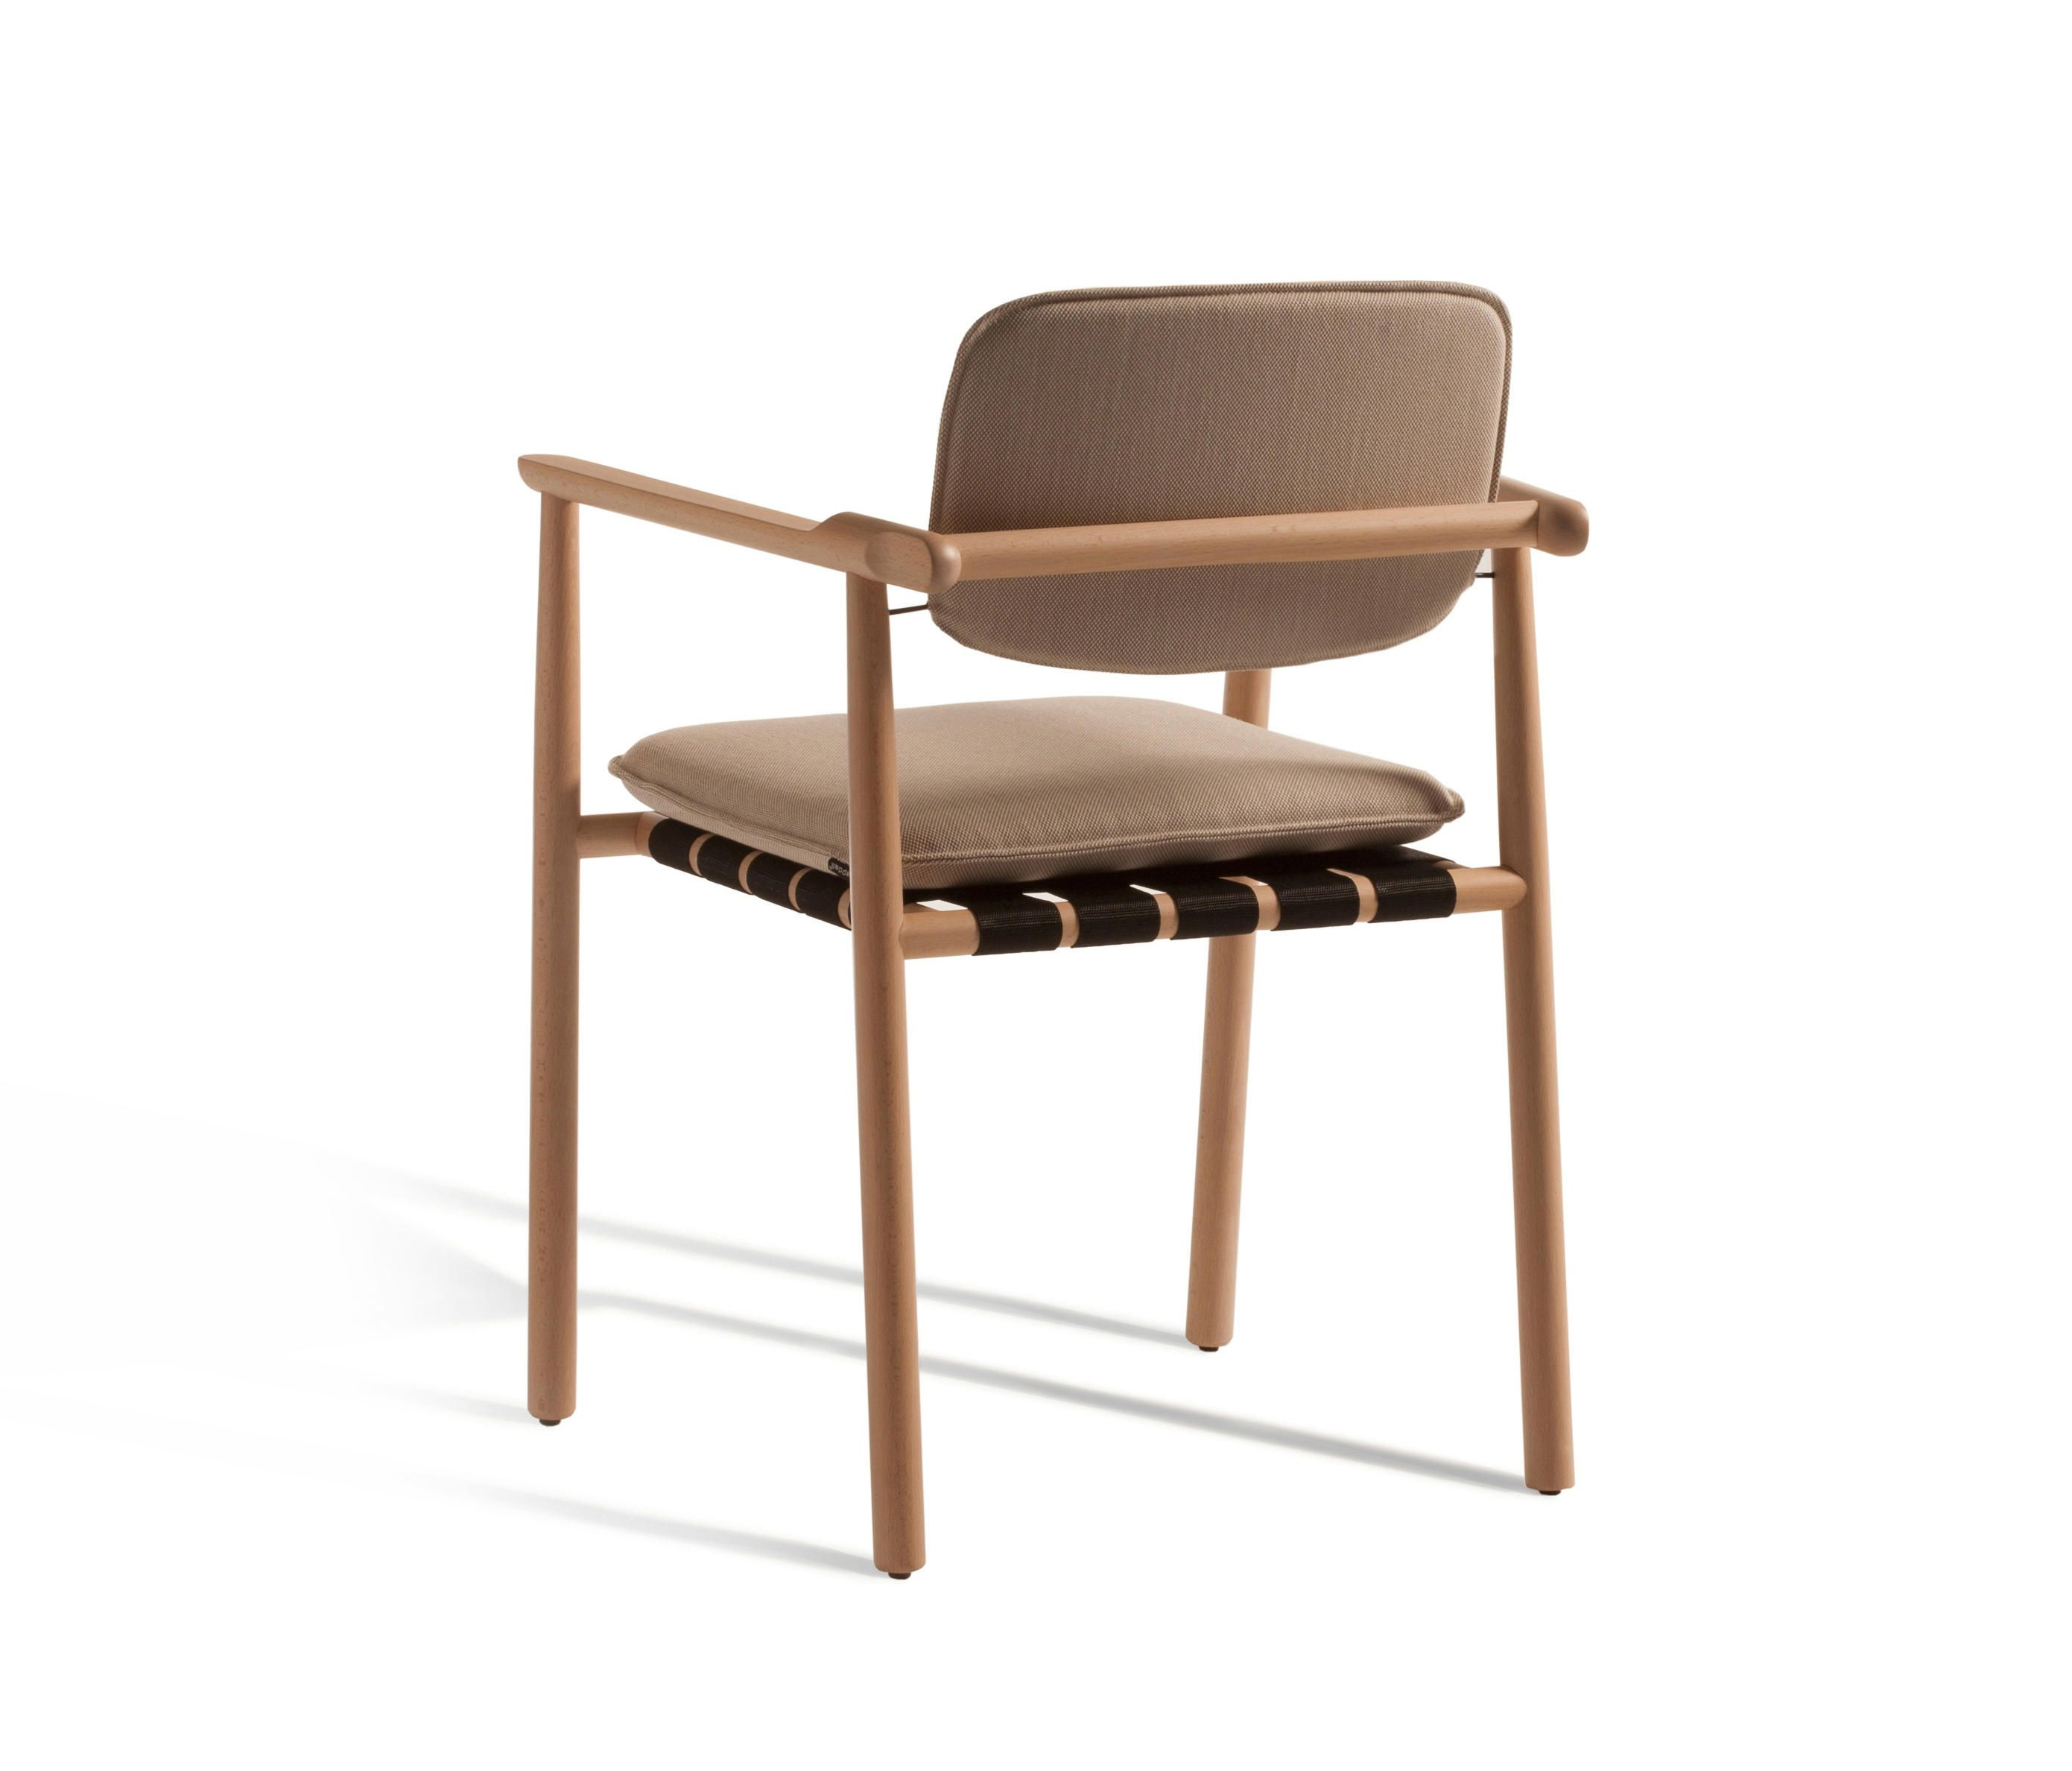 Incroyable Pure Beech Wood, Powder Blue Upholstery And An Innovative Series Of Bands  Securing The Seatu0027s Cushion In Place. Belk Enhances The Natural Elegance Of.